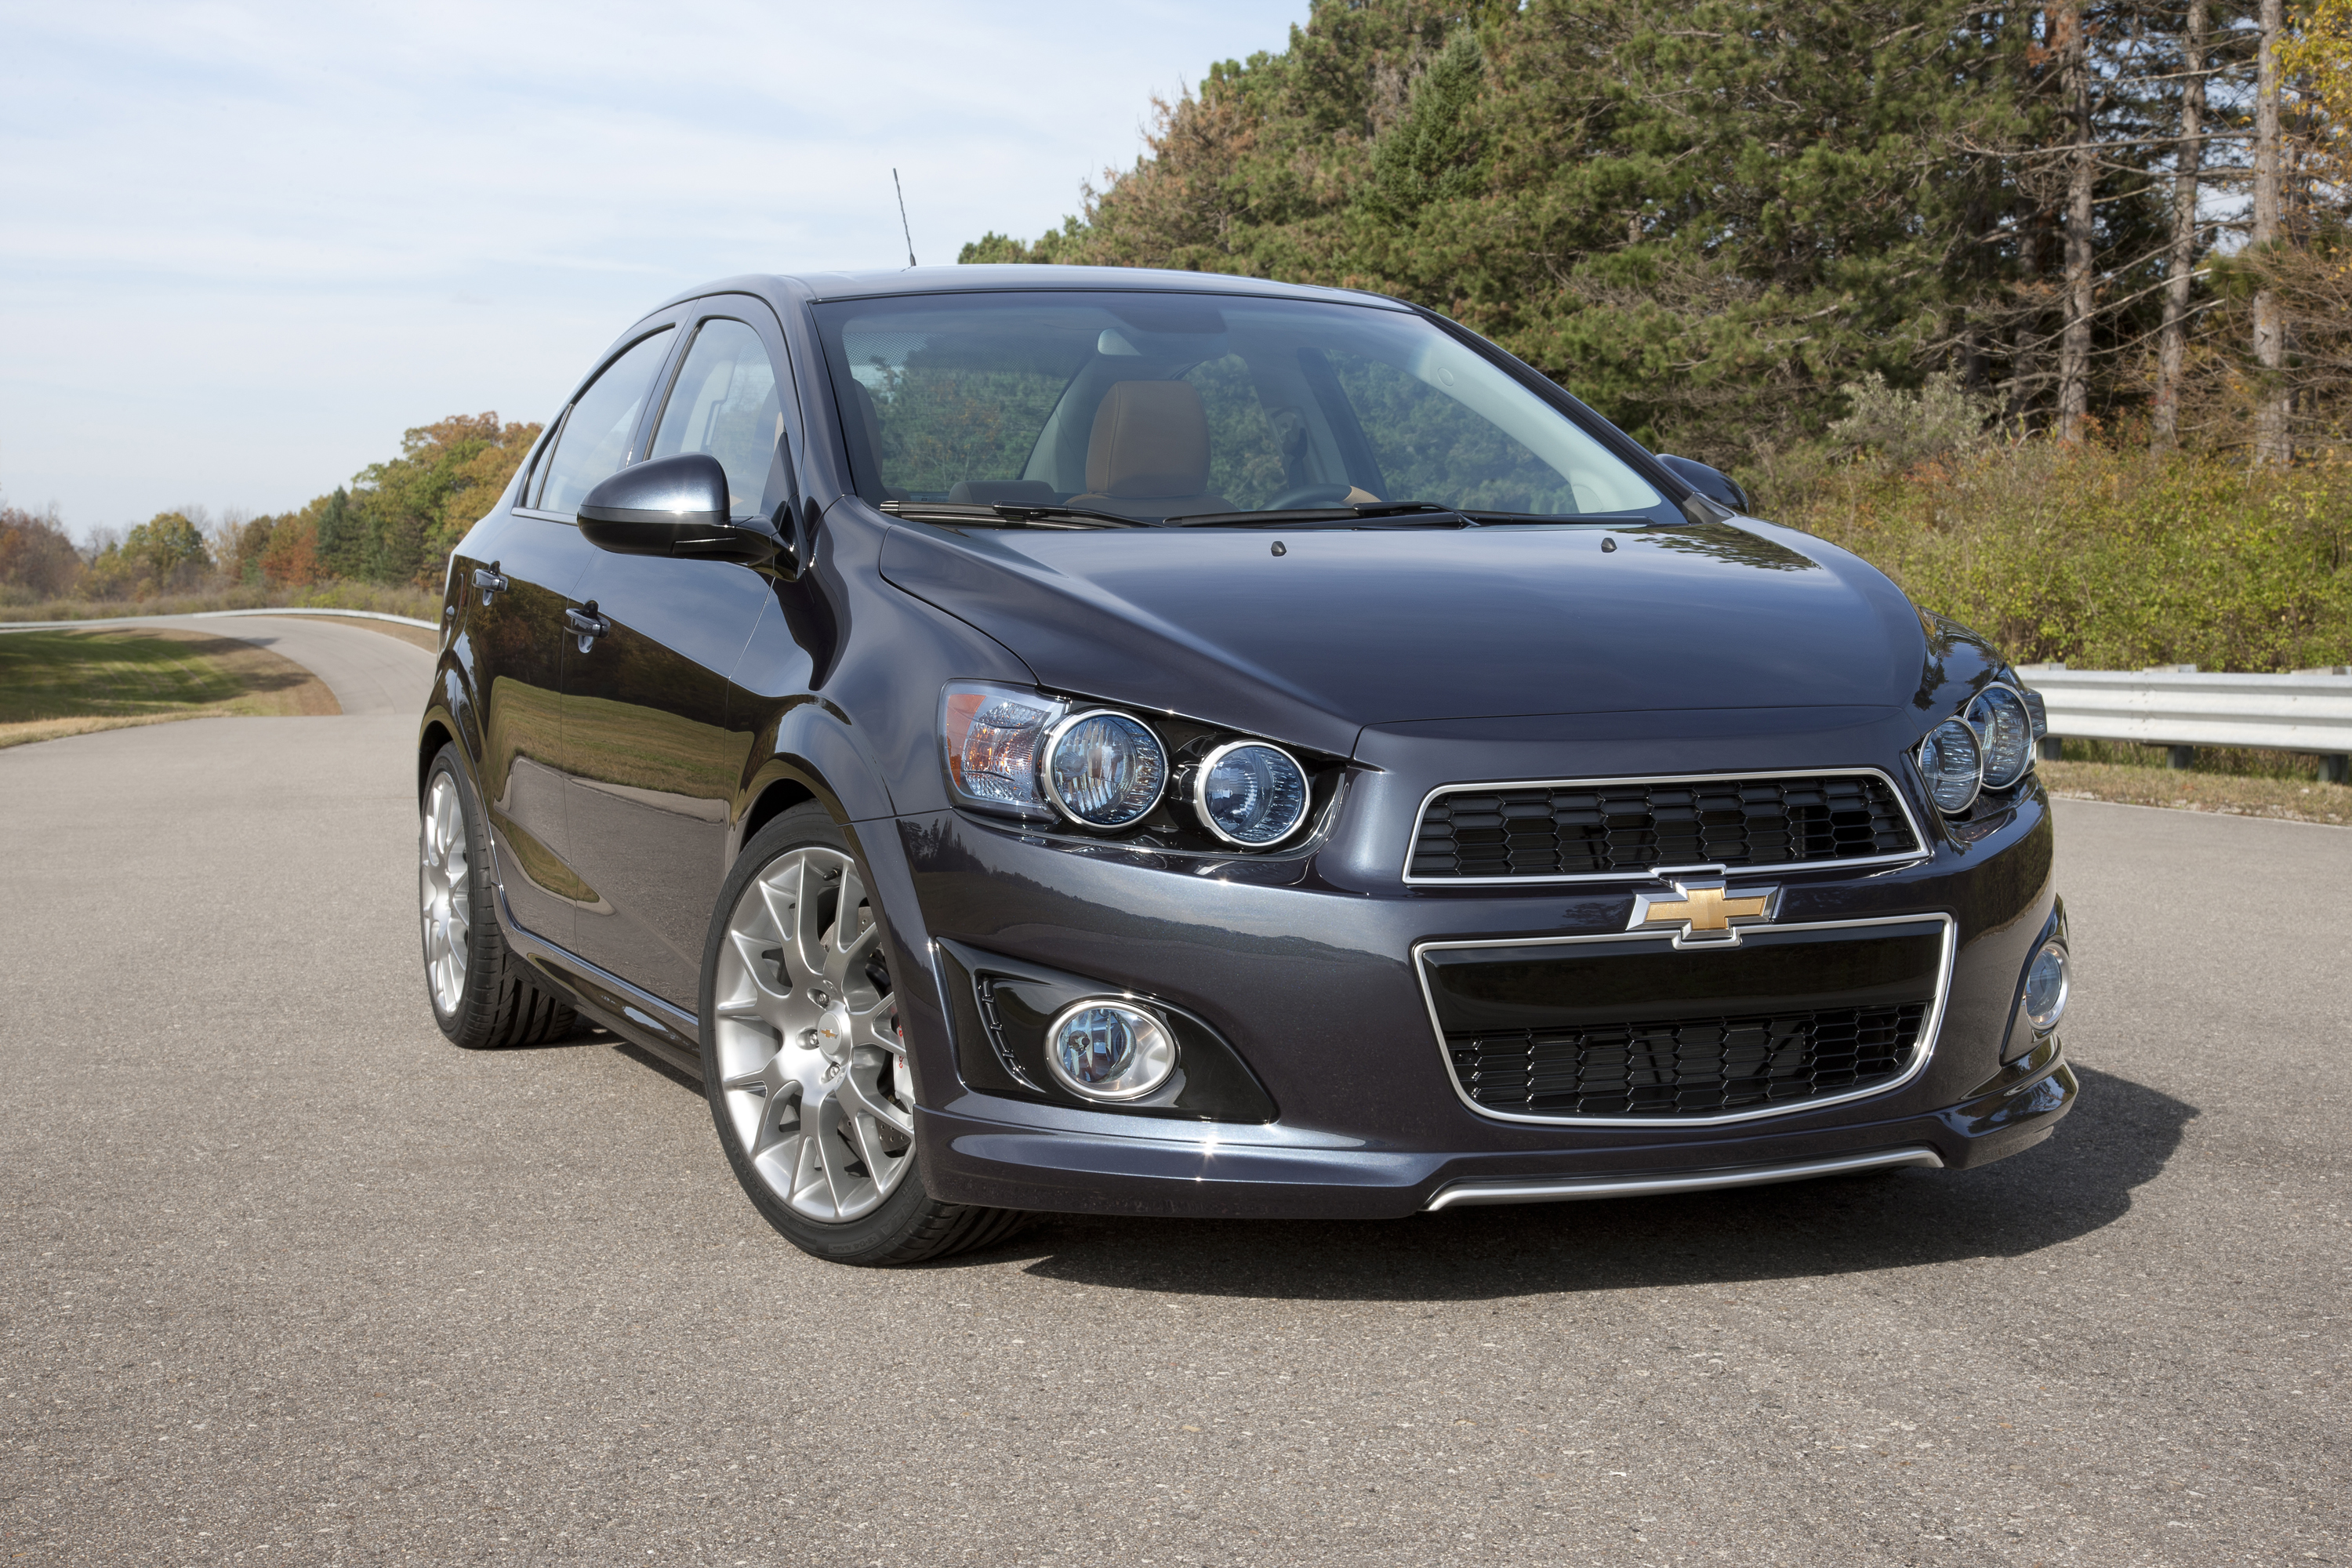 2012 chevrolet sonic dusk review gallery top speed. Black Bedroom Furniture Sets. Home Design Ideas